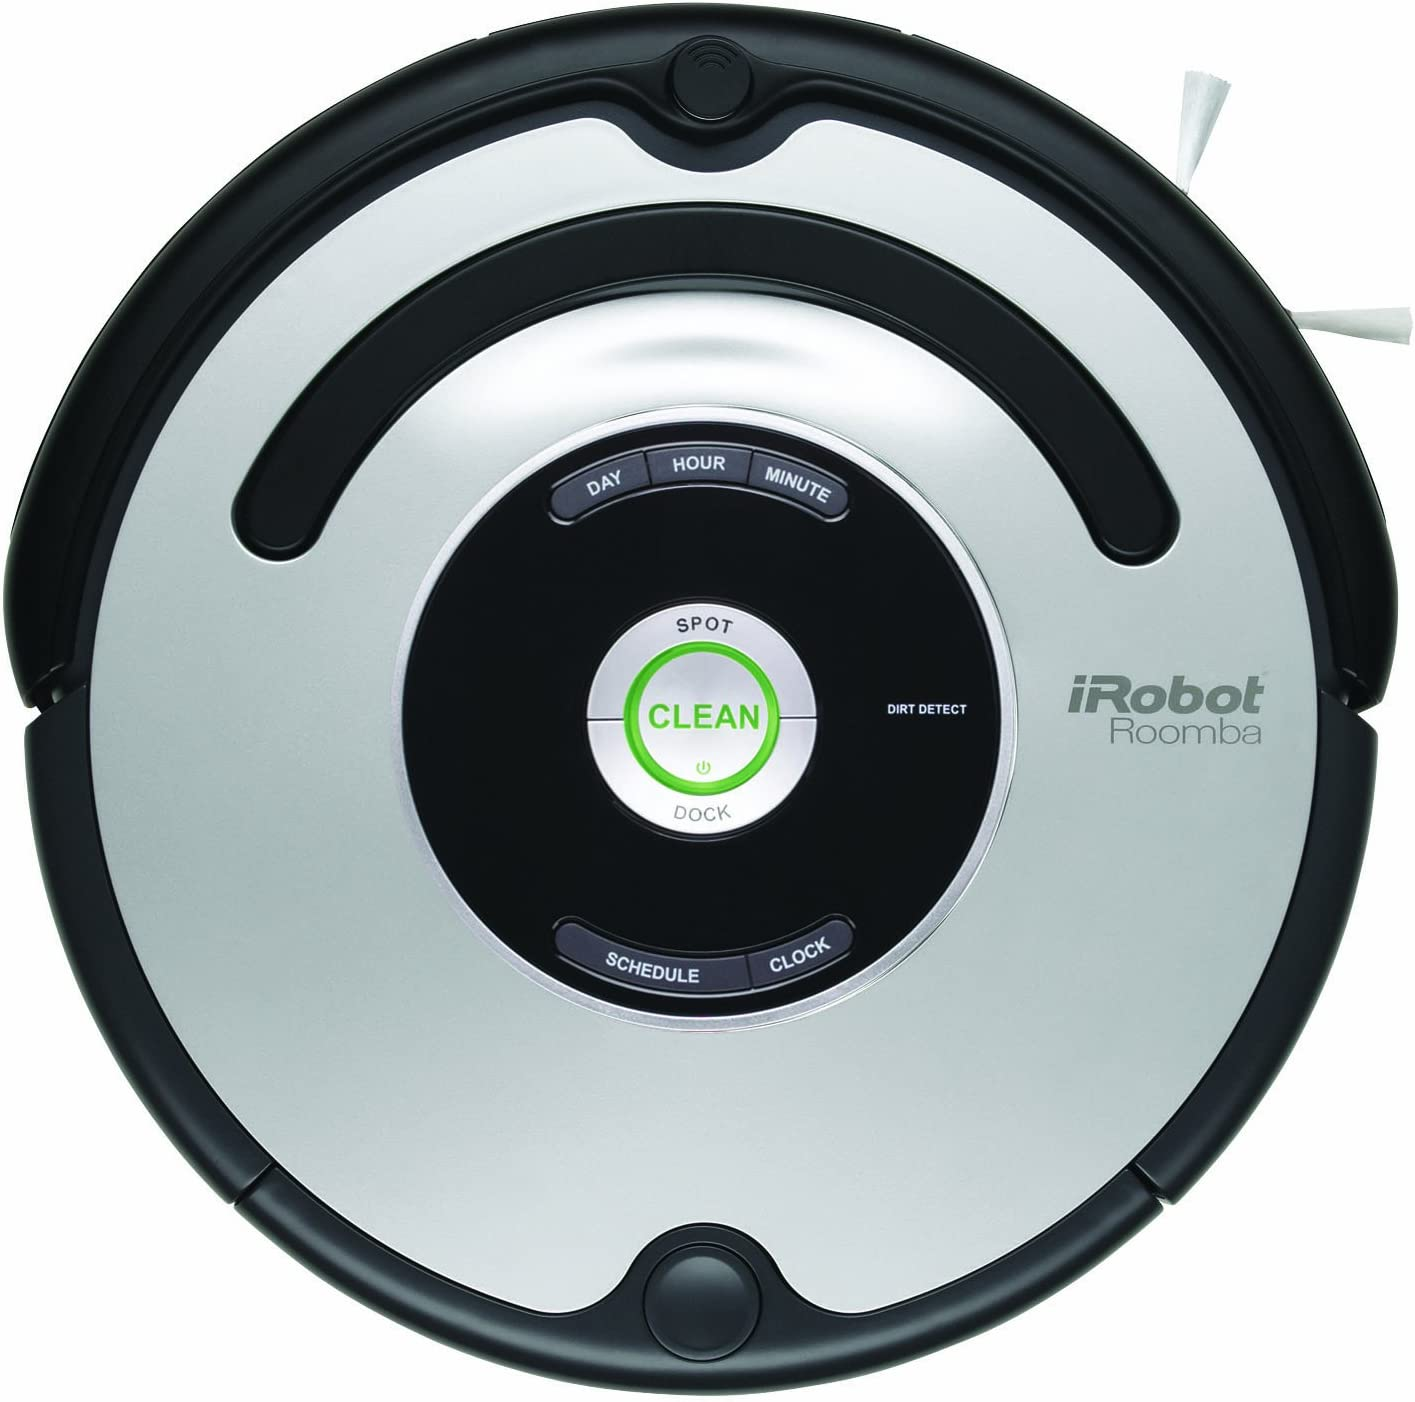 Top 10 Best Robotic Vacuum Cleaners (2020 Reviews & Guide) 6